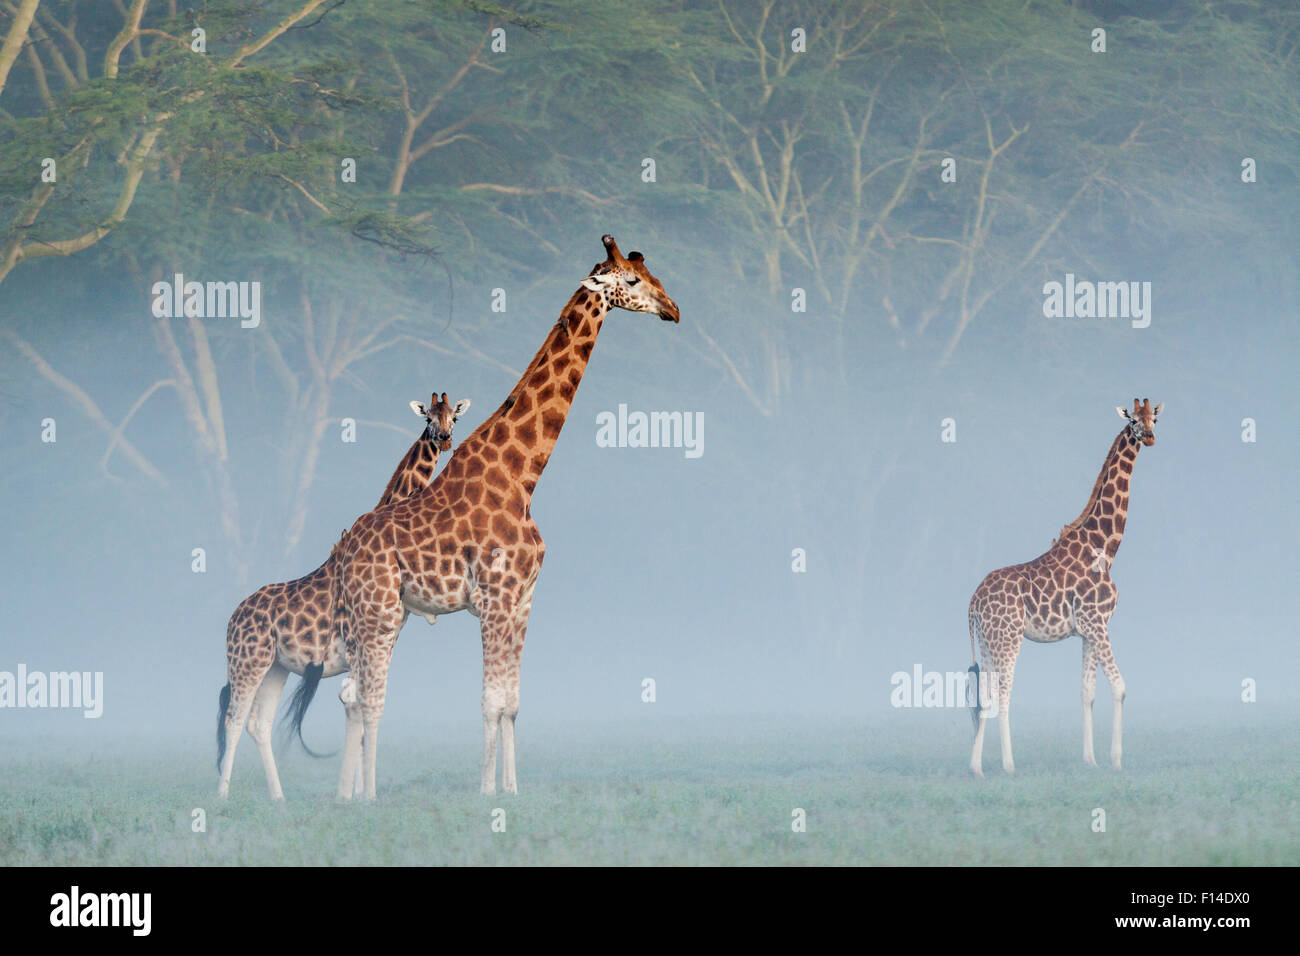 Rothschild's giraffes (Giraffa camelopardalis rothschildi) in the mist at dawn, Nakuru National Park, Kenya. - Stock Image